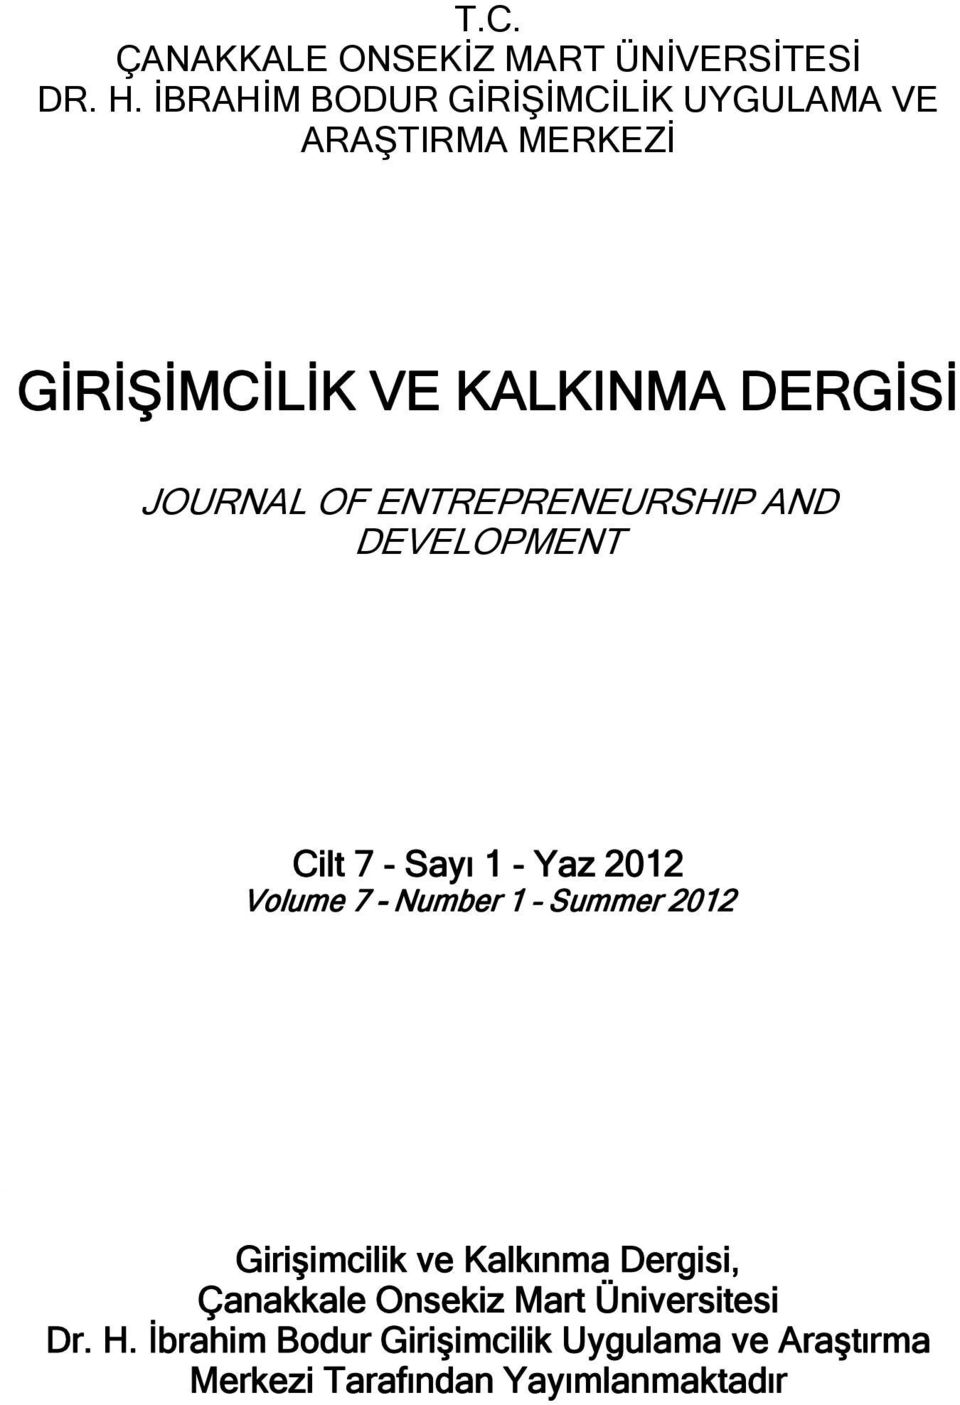 ENTREPRENEURSHIP AND DEVELOPMENT Cilt 7 - Sayı 1 - Yaz 2012 Volume 7 - Number 1 Summer 2012